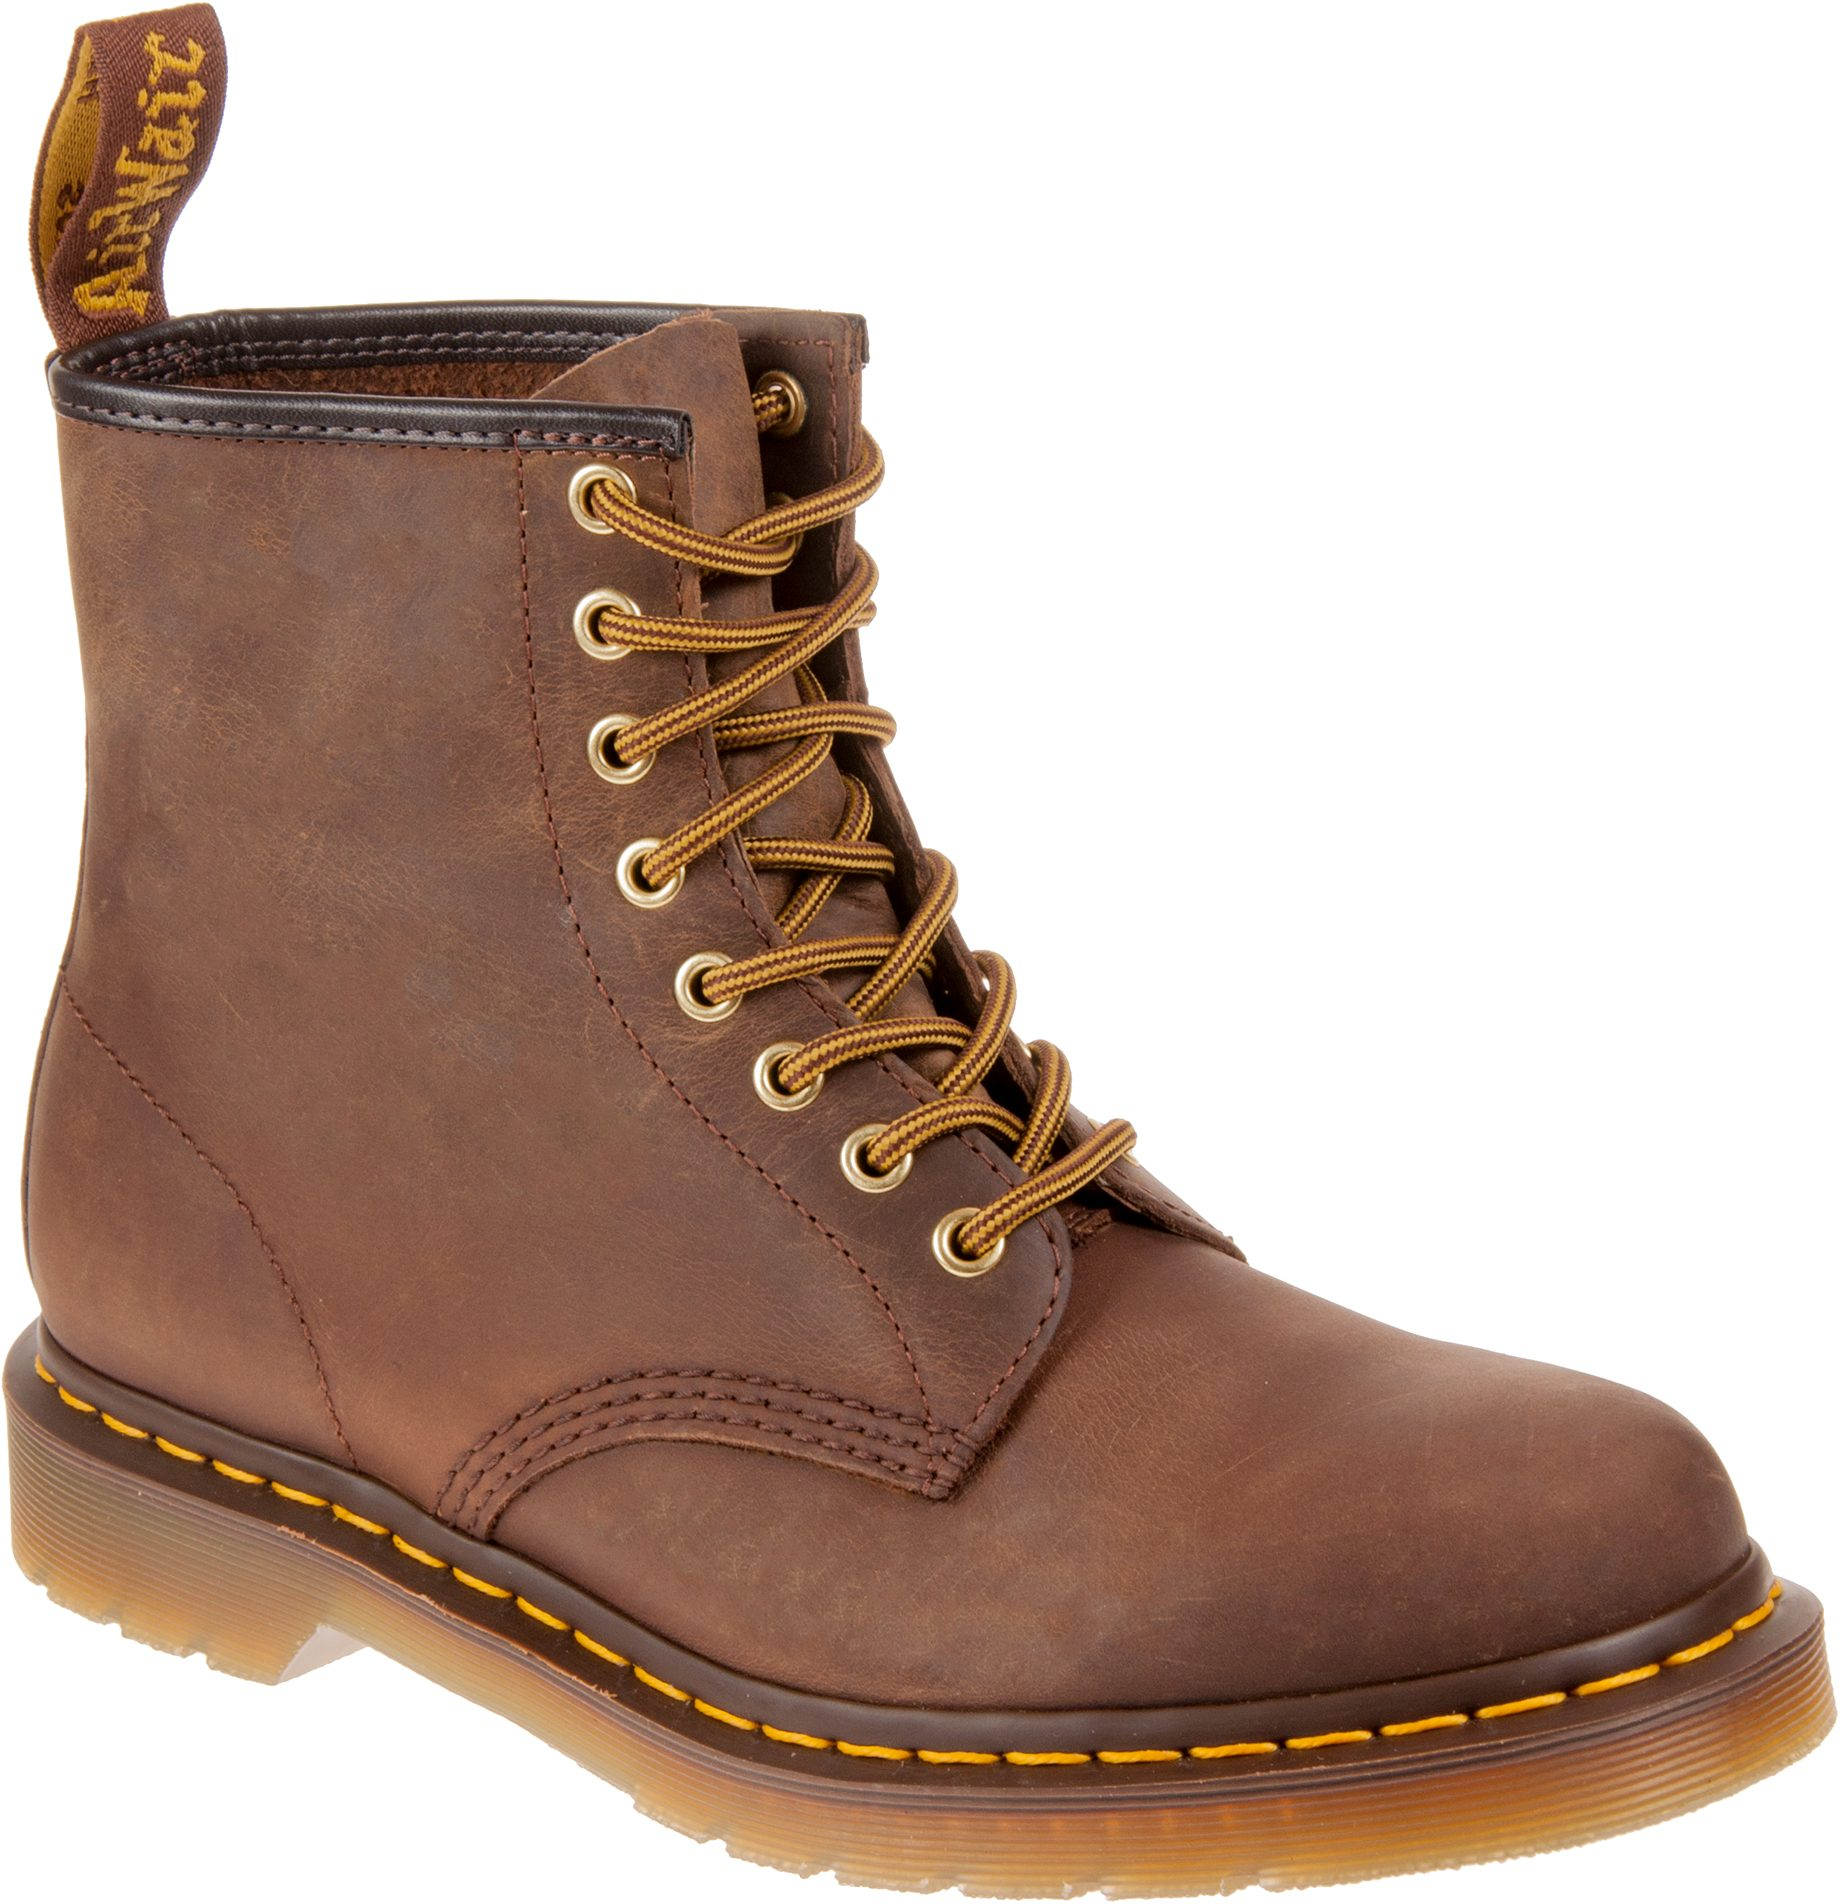 f21d016ae49 Womens Boots - Womens - Humphries Shoes